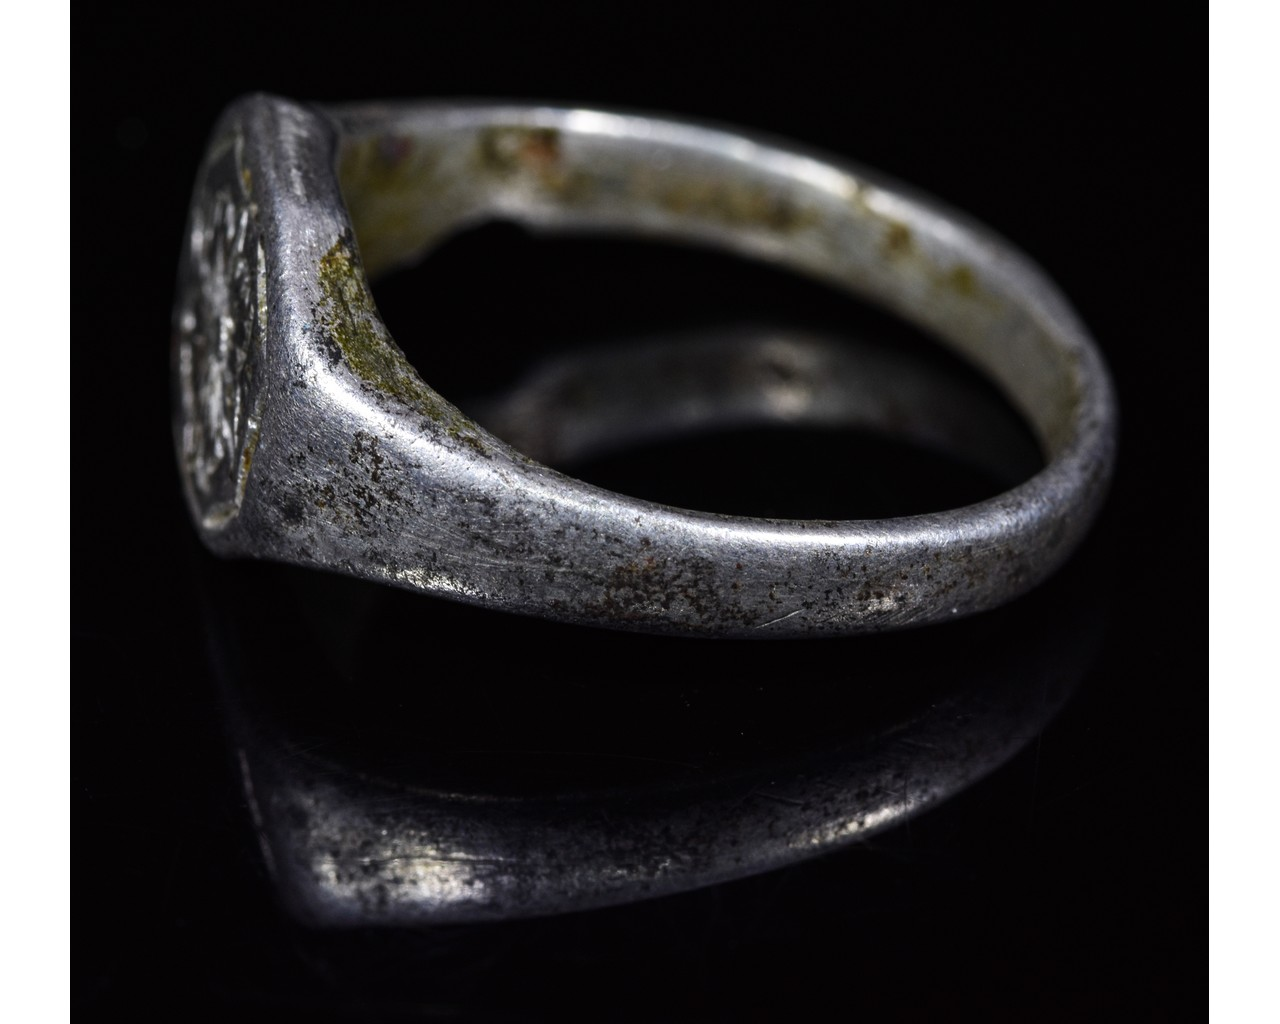 Lot 36 - MEDIEVAL SILVER RING WITH FLOWER